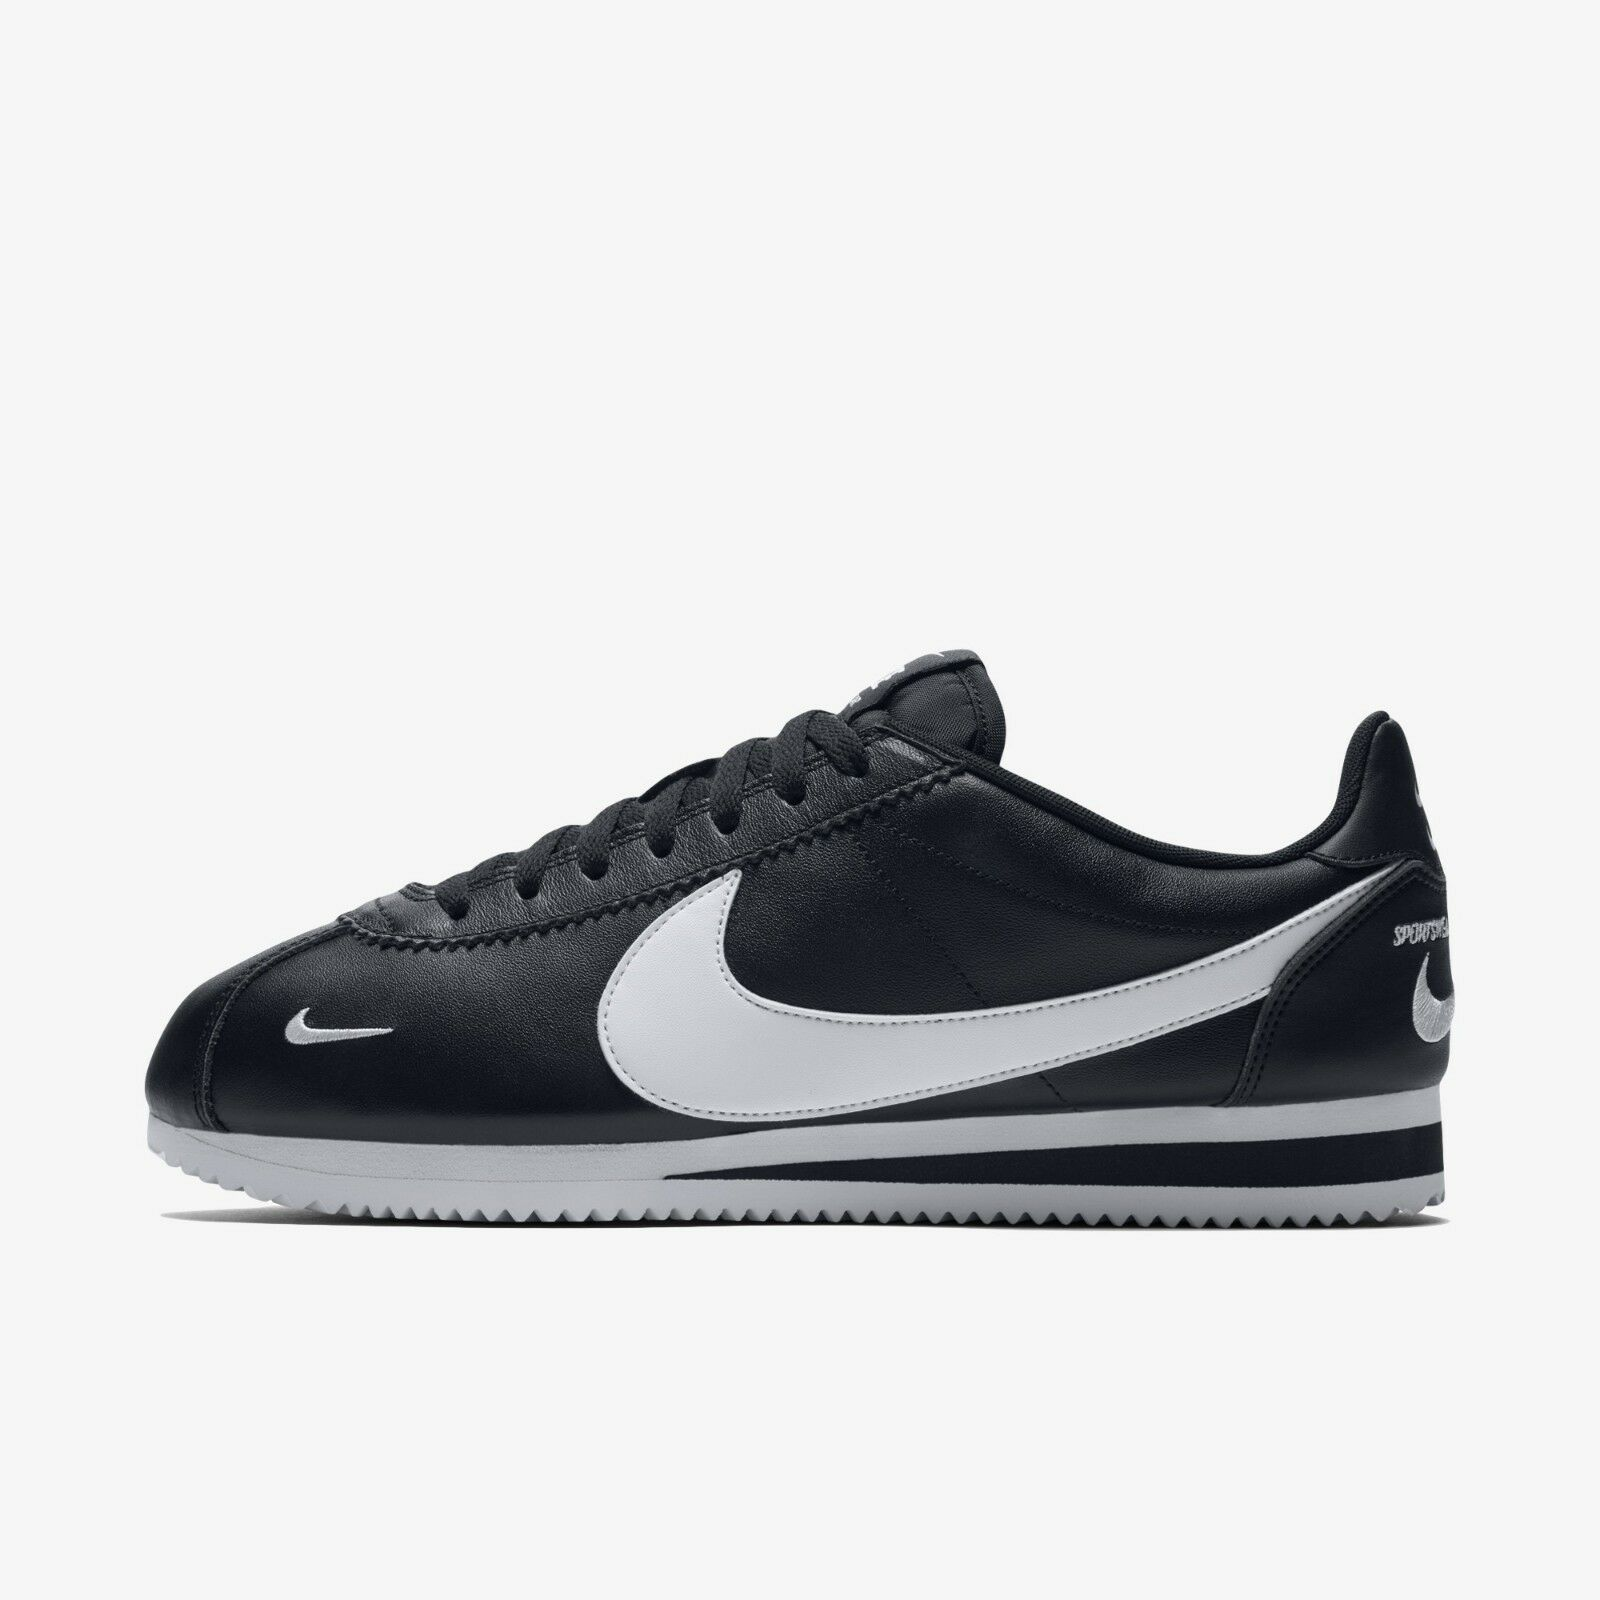 Nike Classic Cortez Premium 807480-004 Black White Mens shoes Sneakers